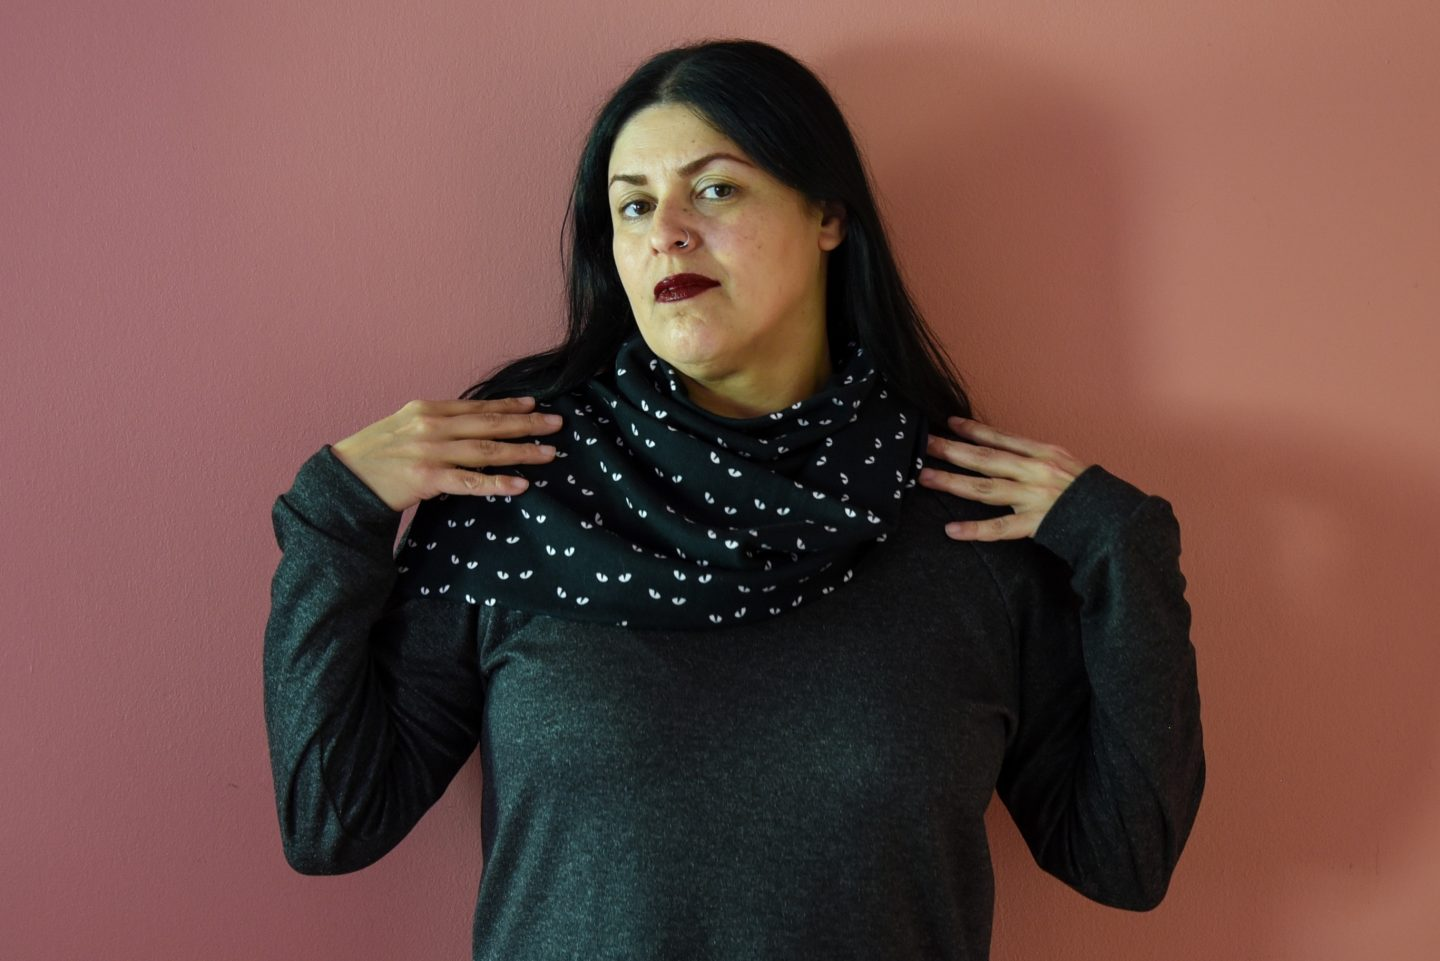 Image of a woman with long black hair and red lipstick wearing a black fabric cowl with glow-in-the-dark eye print and gray top standing in front of a pink wall